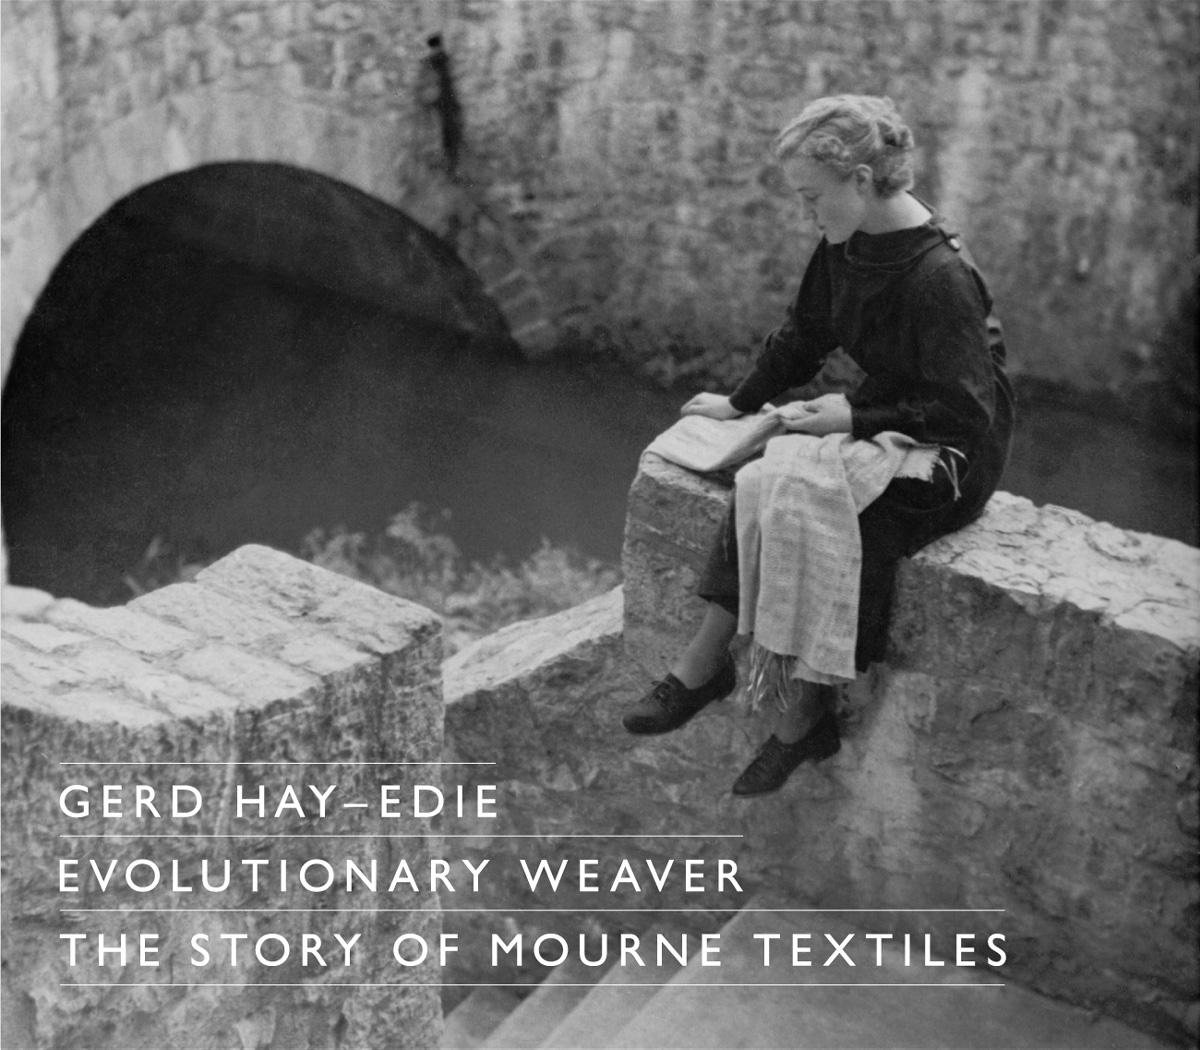 MOURNE TEXTILES EXHIBITION